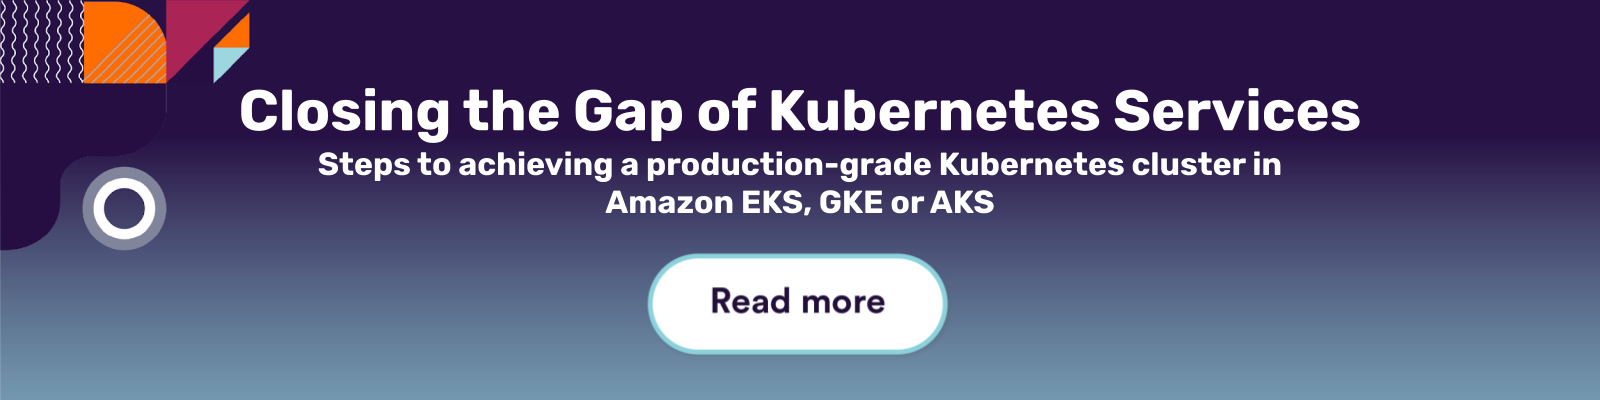 Closing the Gap of Kubernetes Services. Steps to achieving a production-grade Kubernetes cluster in Amazon EKS, GKE or AKS